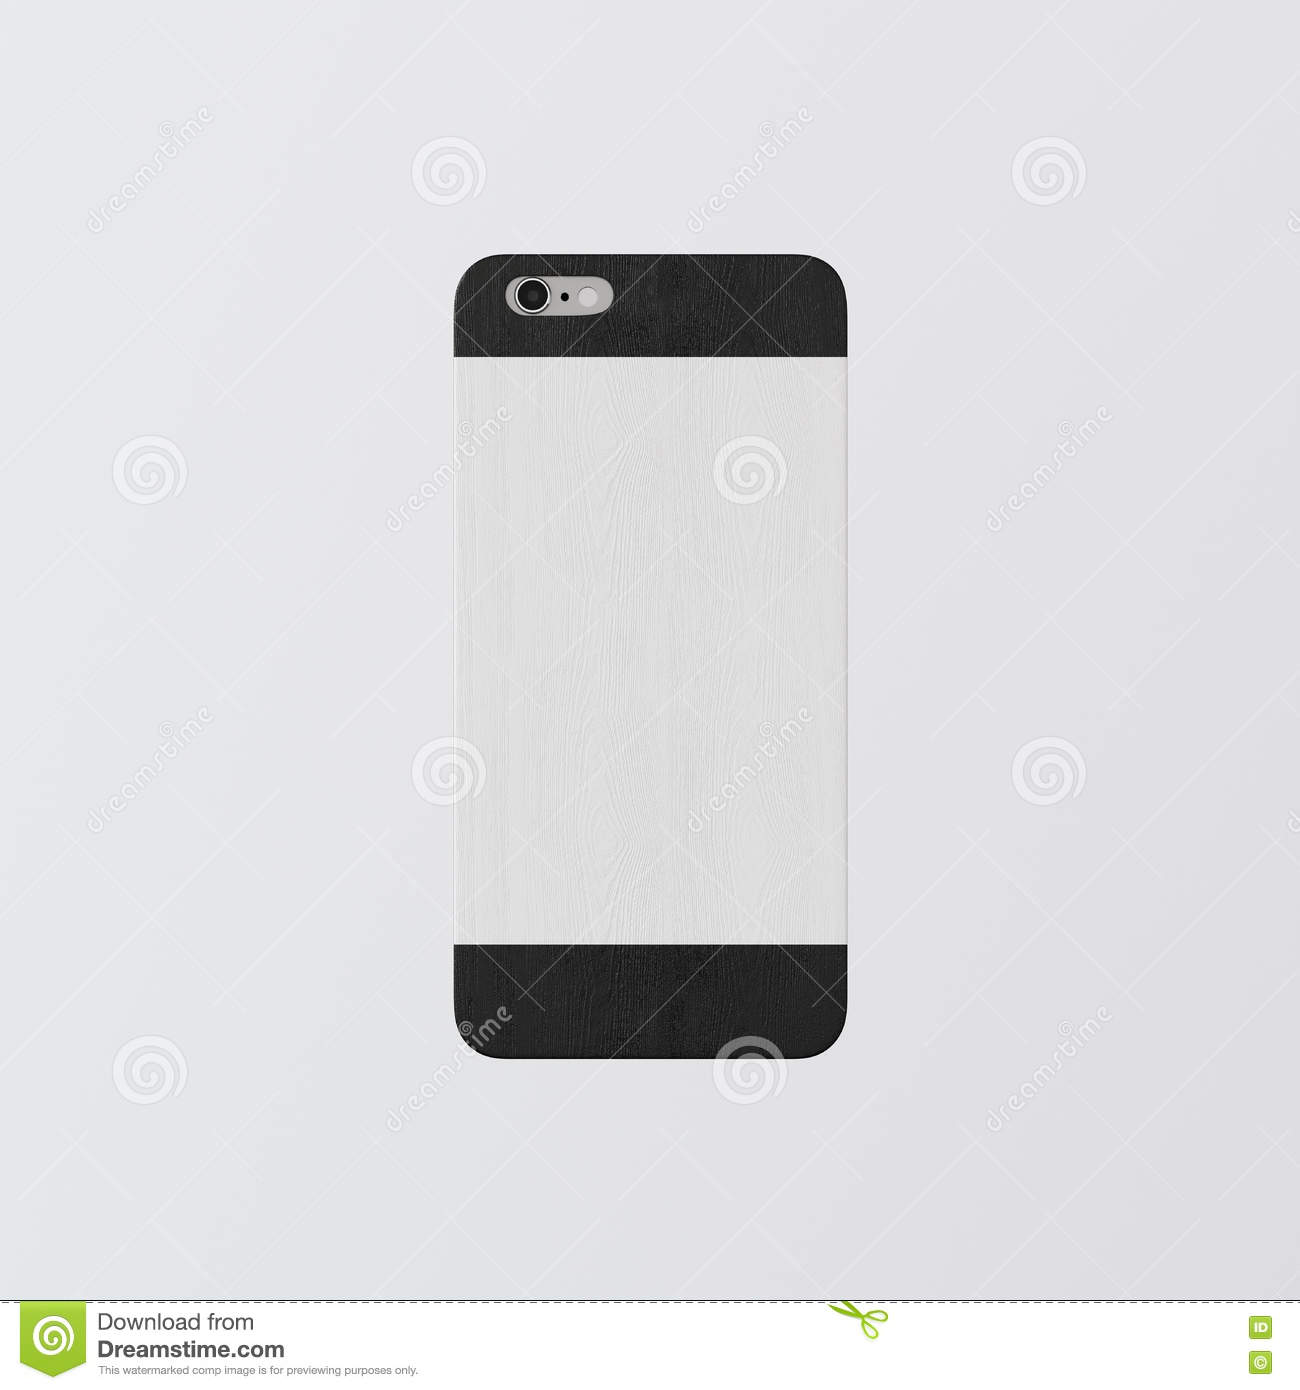 Case For Phone Cover For Smartphone Stock Image 92543575